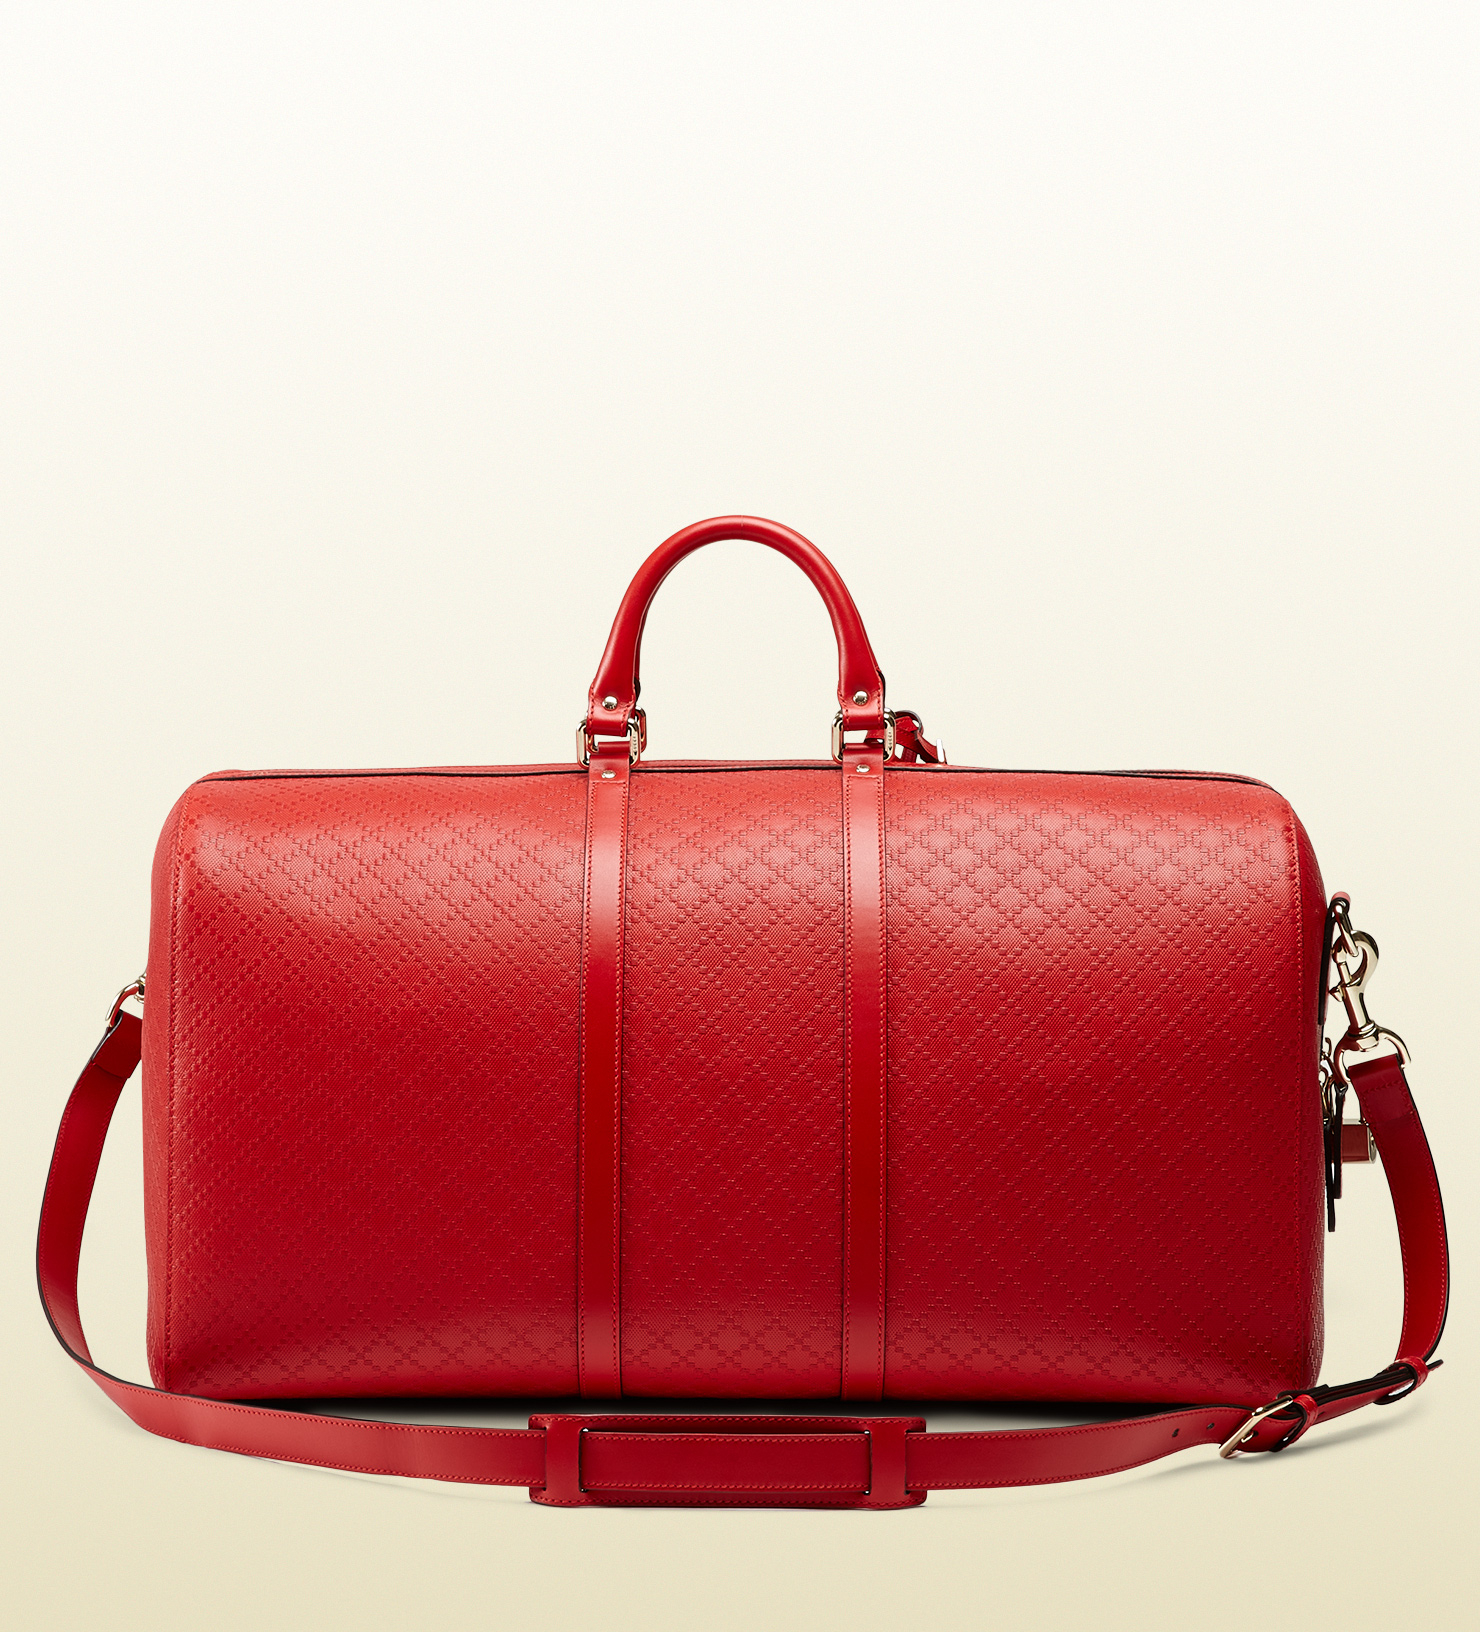 d45792dab40 Lyst - Gucci Bright Diamante Leather Carry-on Duffle Bag in Red